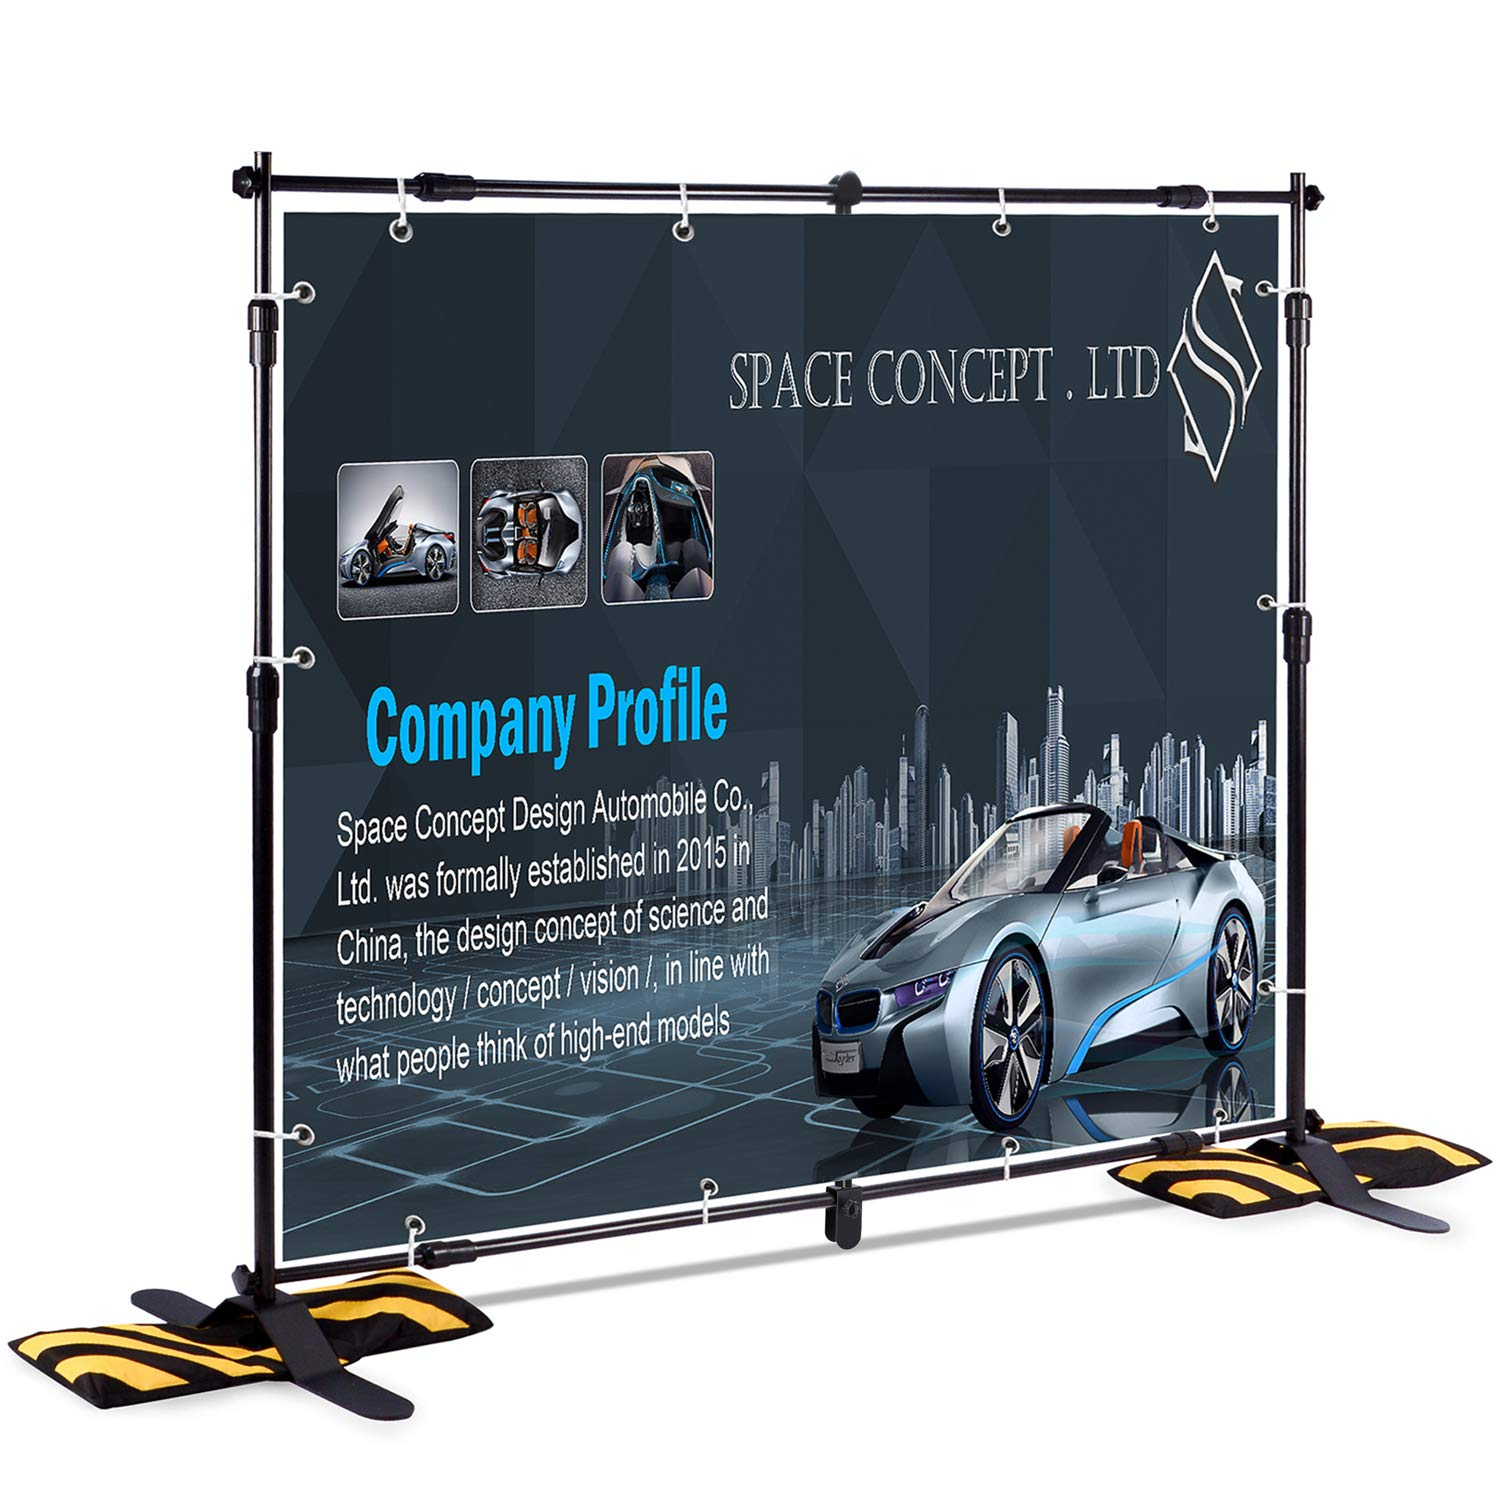 T-Sign 8'x8' Professional Backdrop Banner Stand Large Tube Heavy Duty Telescopic Step and Repeat for Photo Booth Background and Trade Show with Carrying Case and Sand Bags for Free